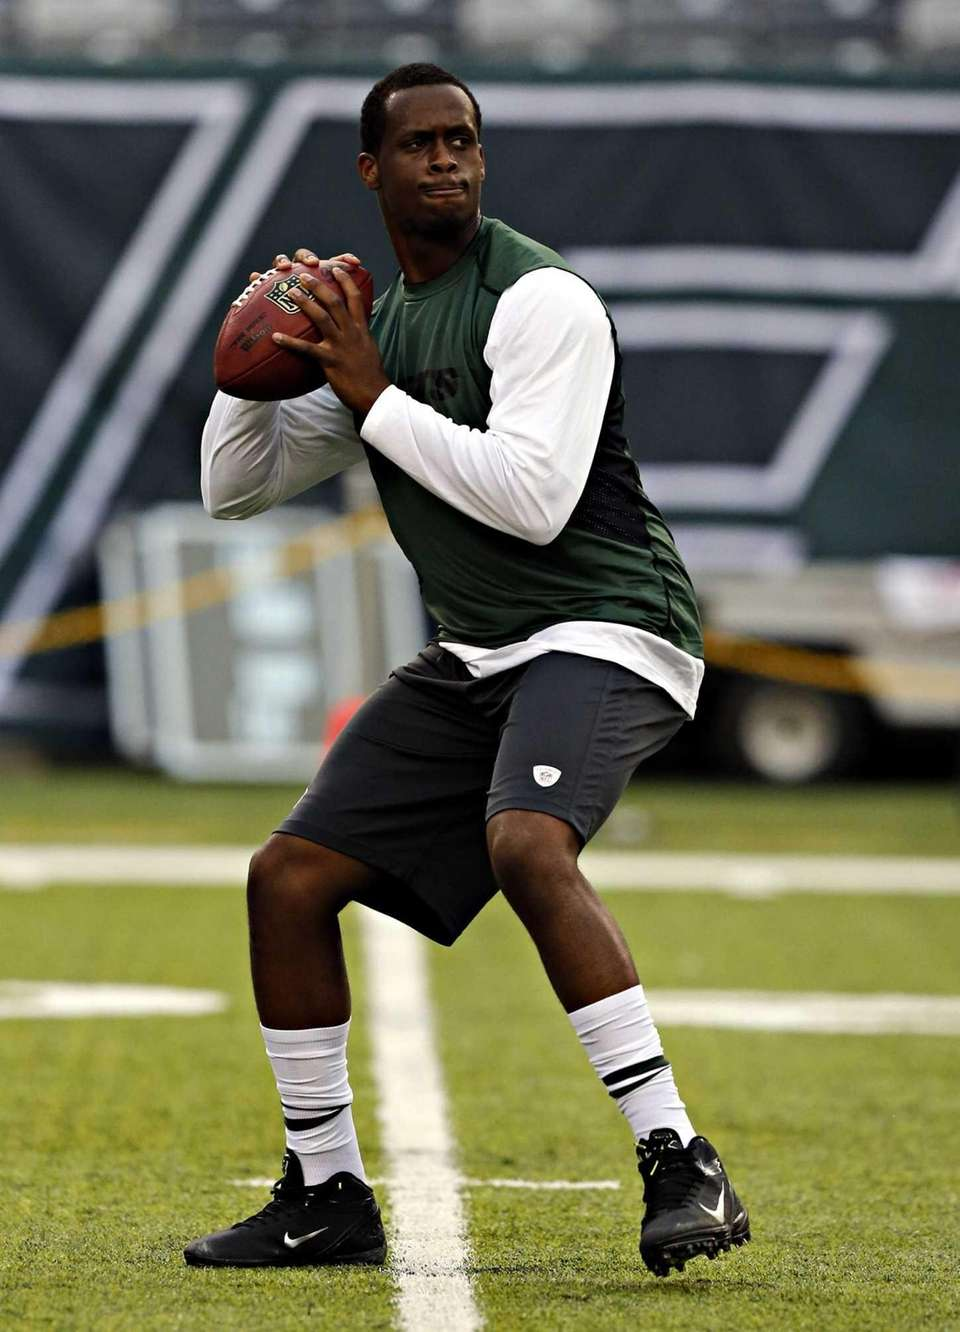 Jets quarterback Geno Smith, who was not scheduled